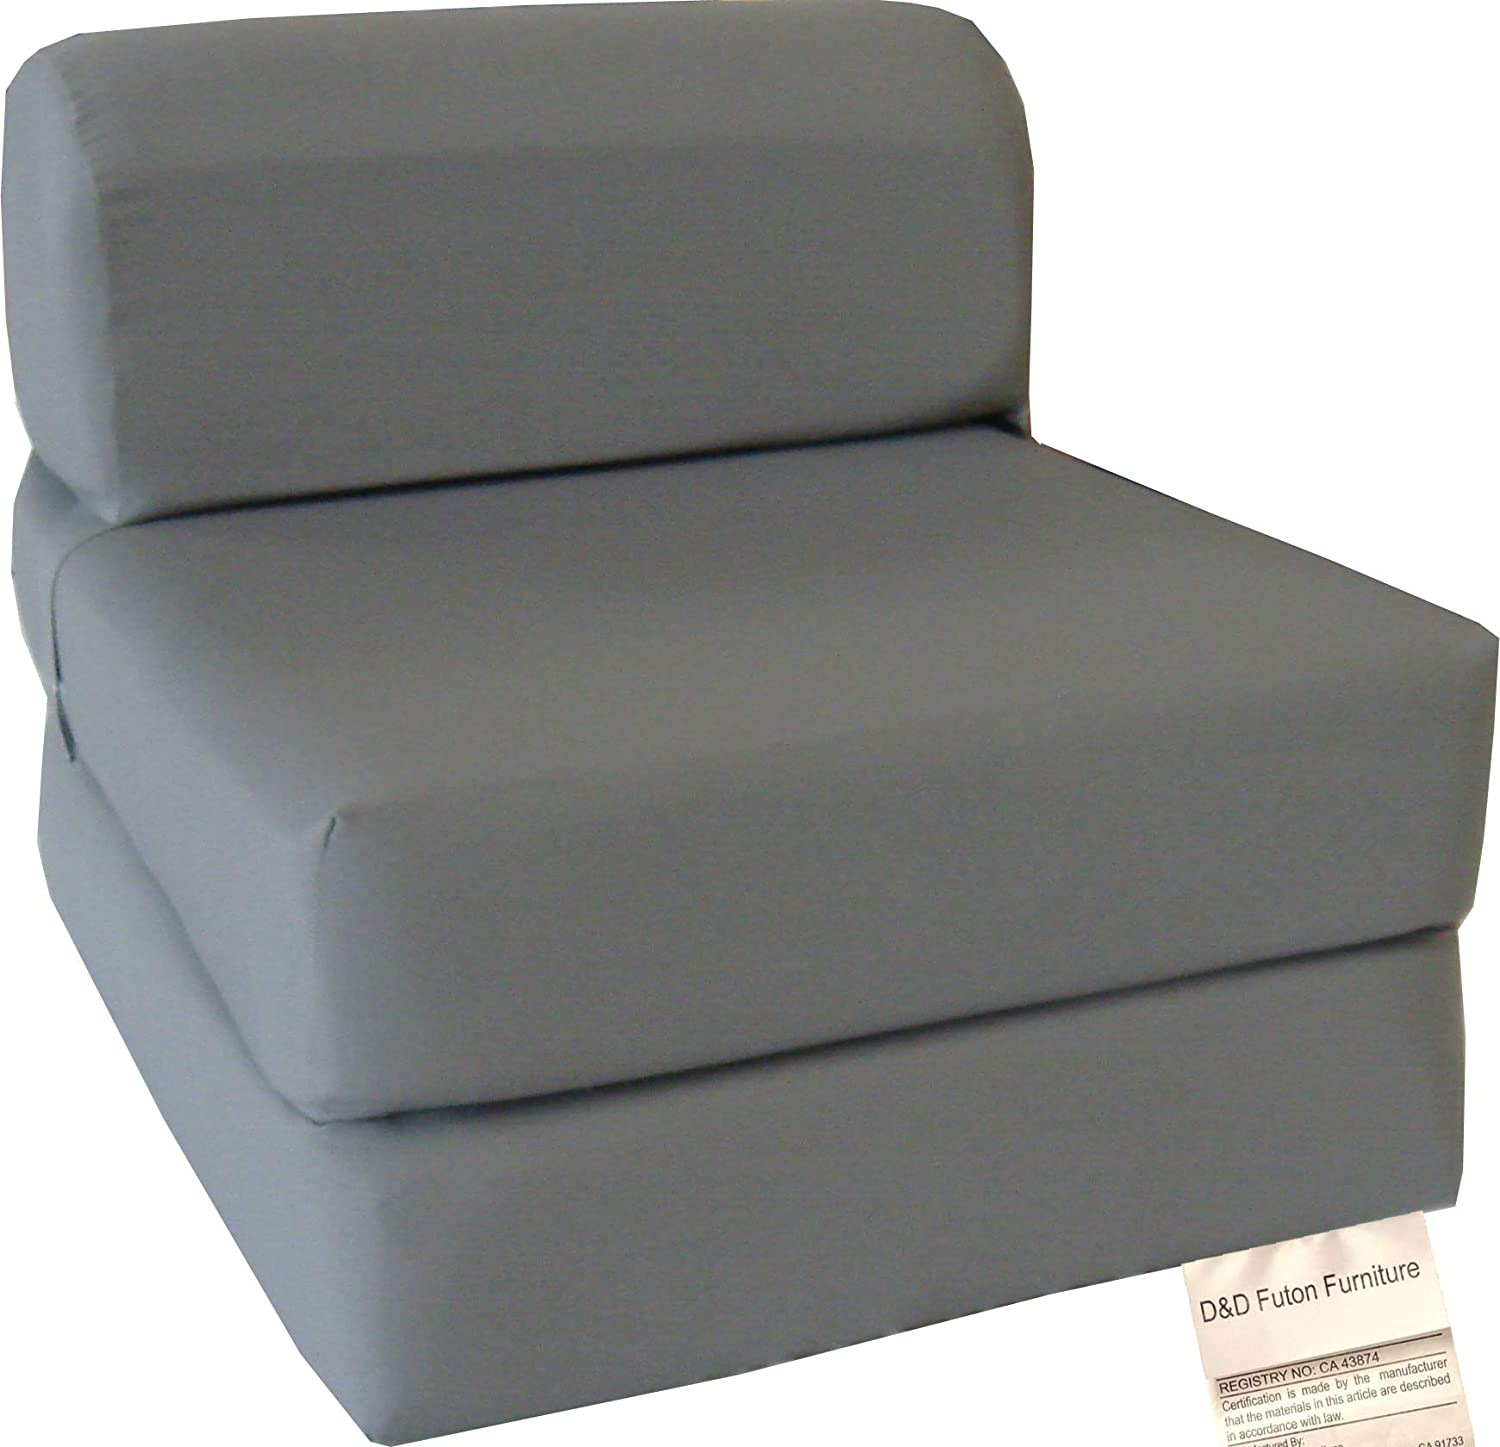 D&D Futon Furniture Gray Sleeper Chair